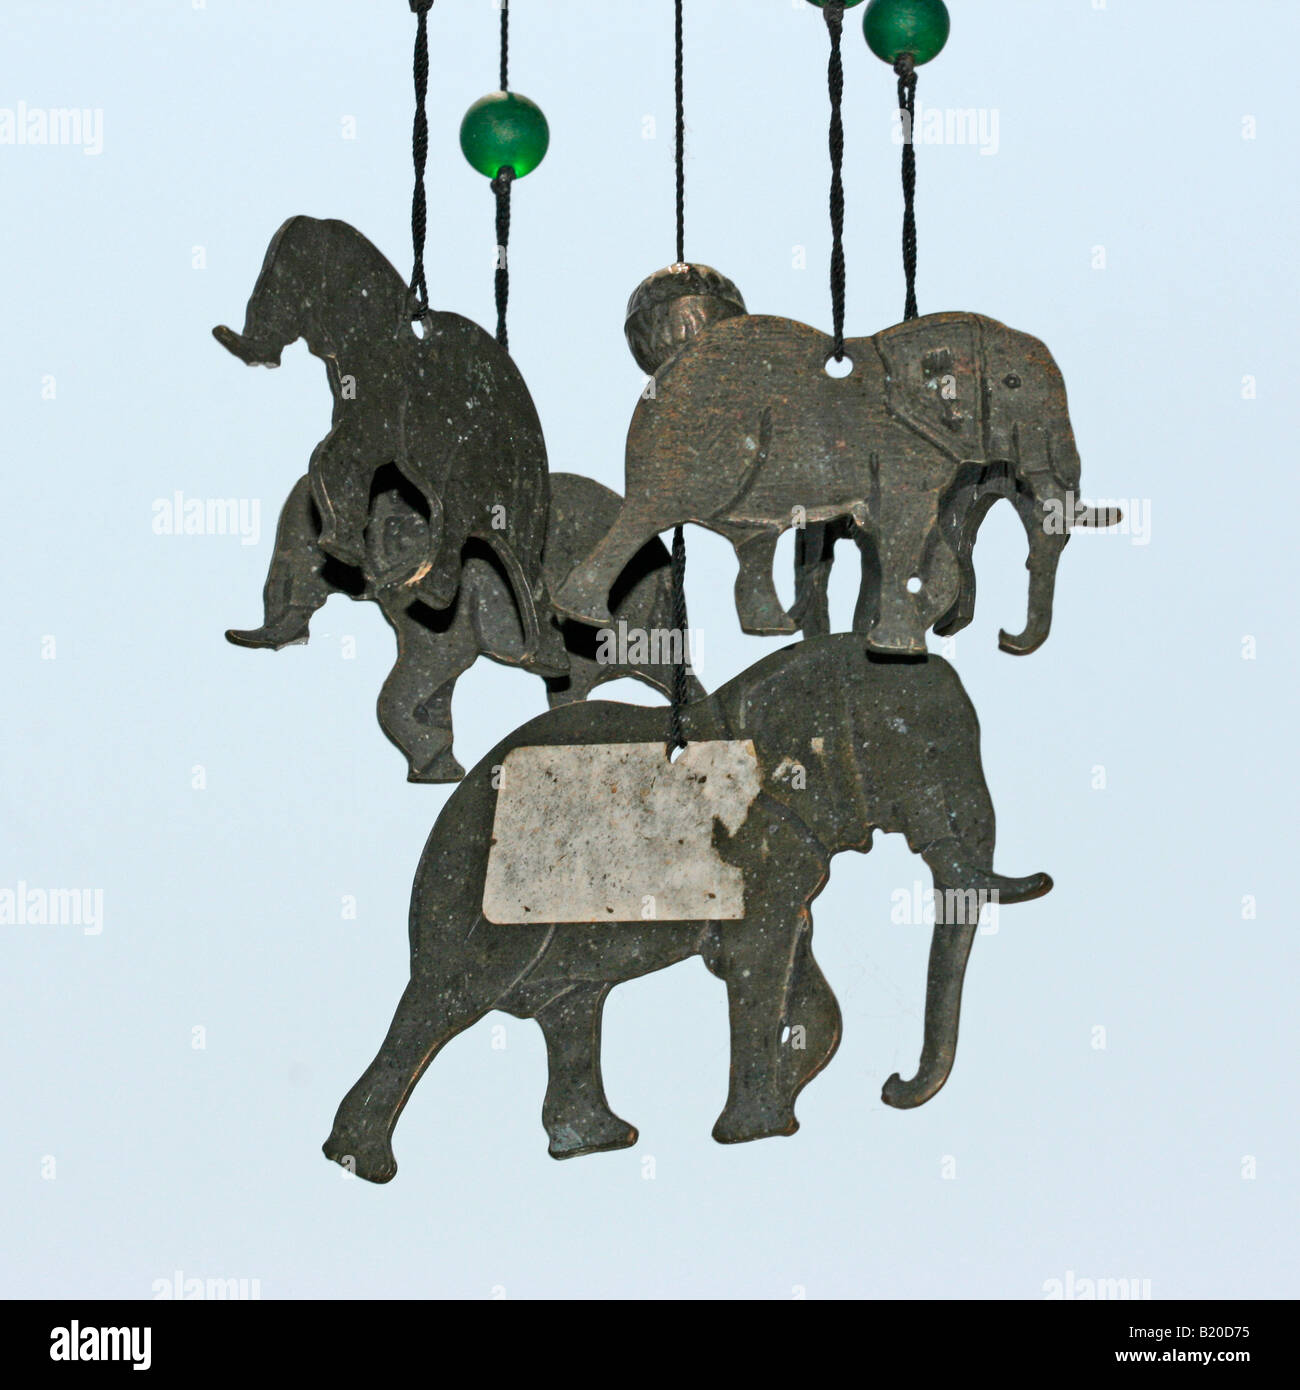 A wind chime of metal elephants - Stock Image